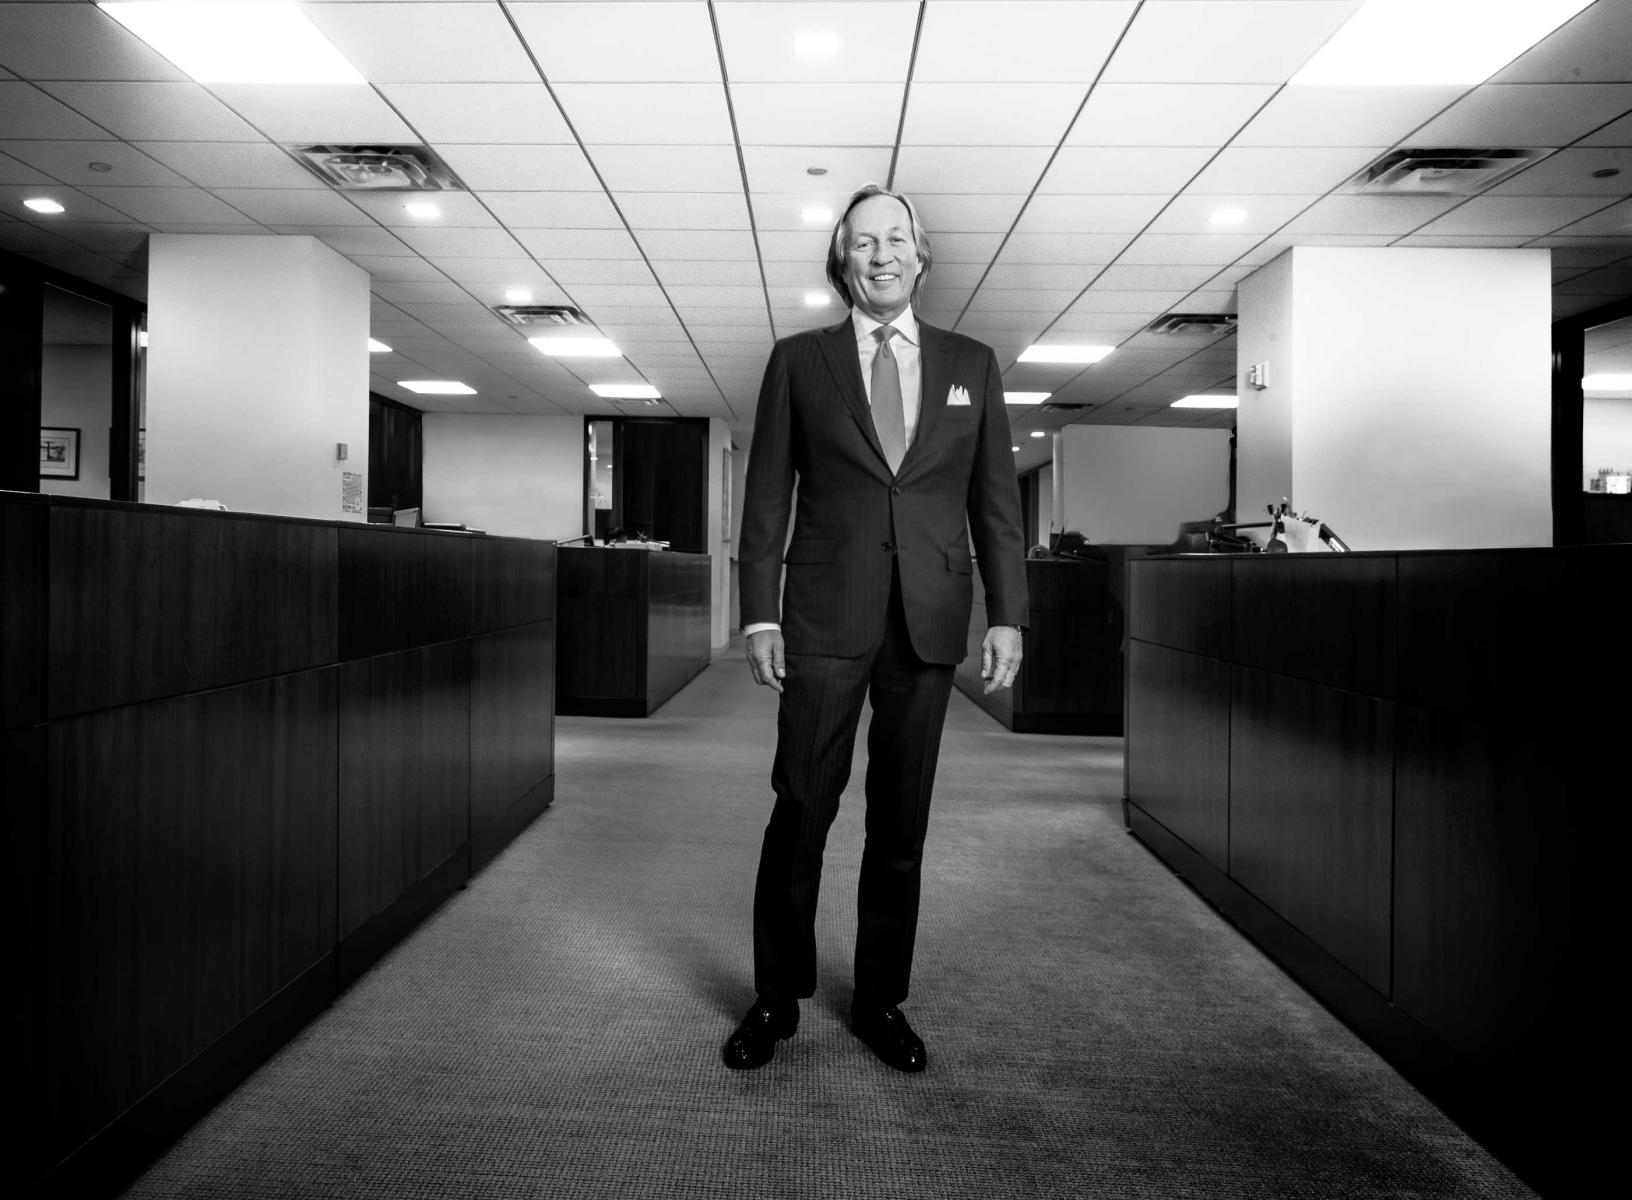 Roy Marsh CEO of Eastdil 40 west 57th street New York City for Estates Gazette publication in London, England : Portraits-Keywording : NY - Portrait Photographer Video, Architectural, Corporate Editorial Location Photography